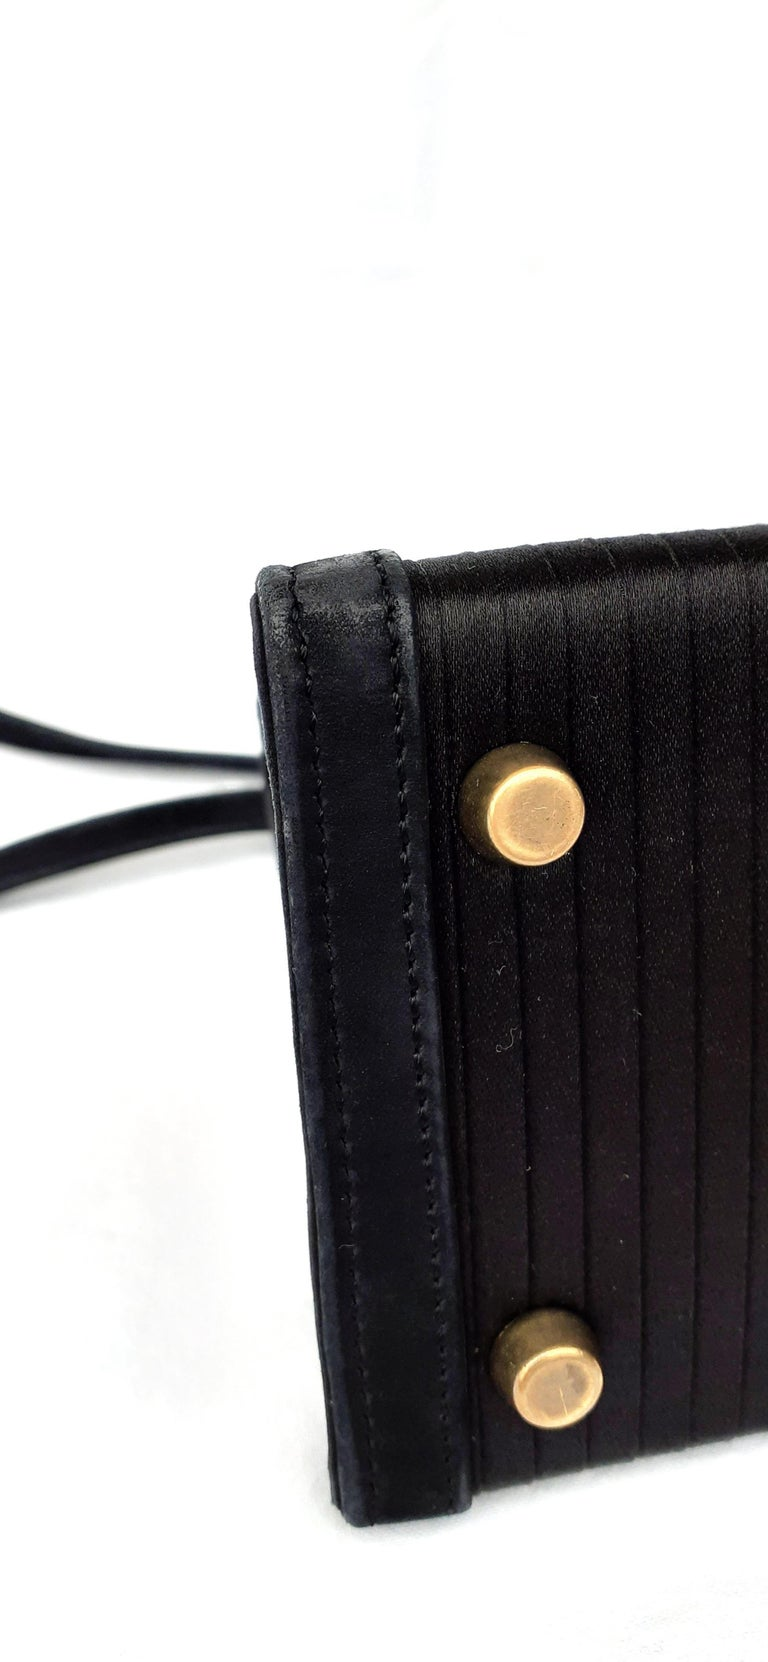 Exceptional Hermès Vintage Mini Kelly Sellier Bag Satin and Doblis Gold Hdw 20cm For Sale 5